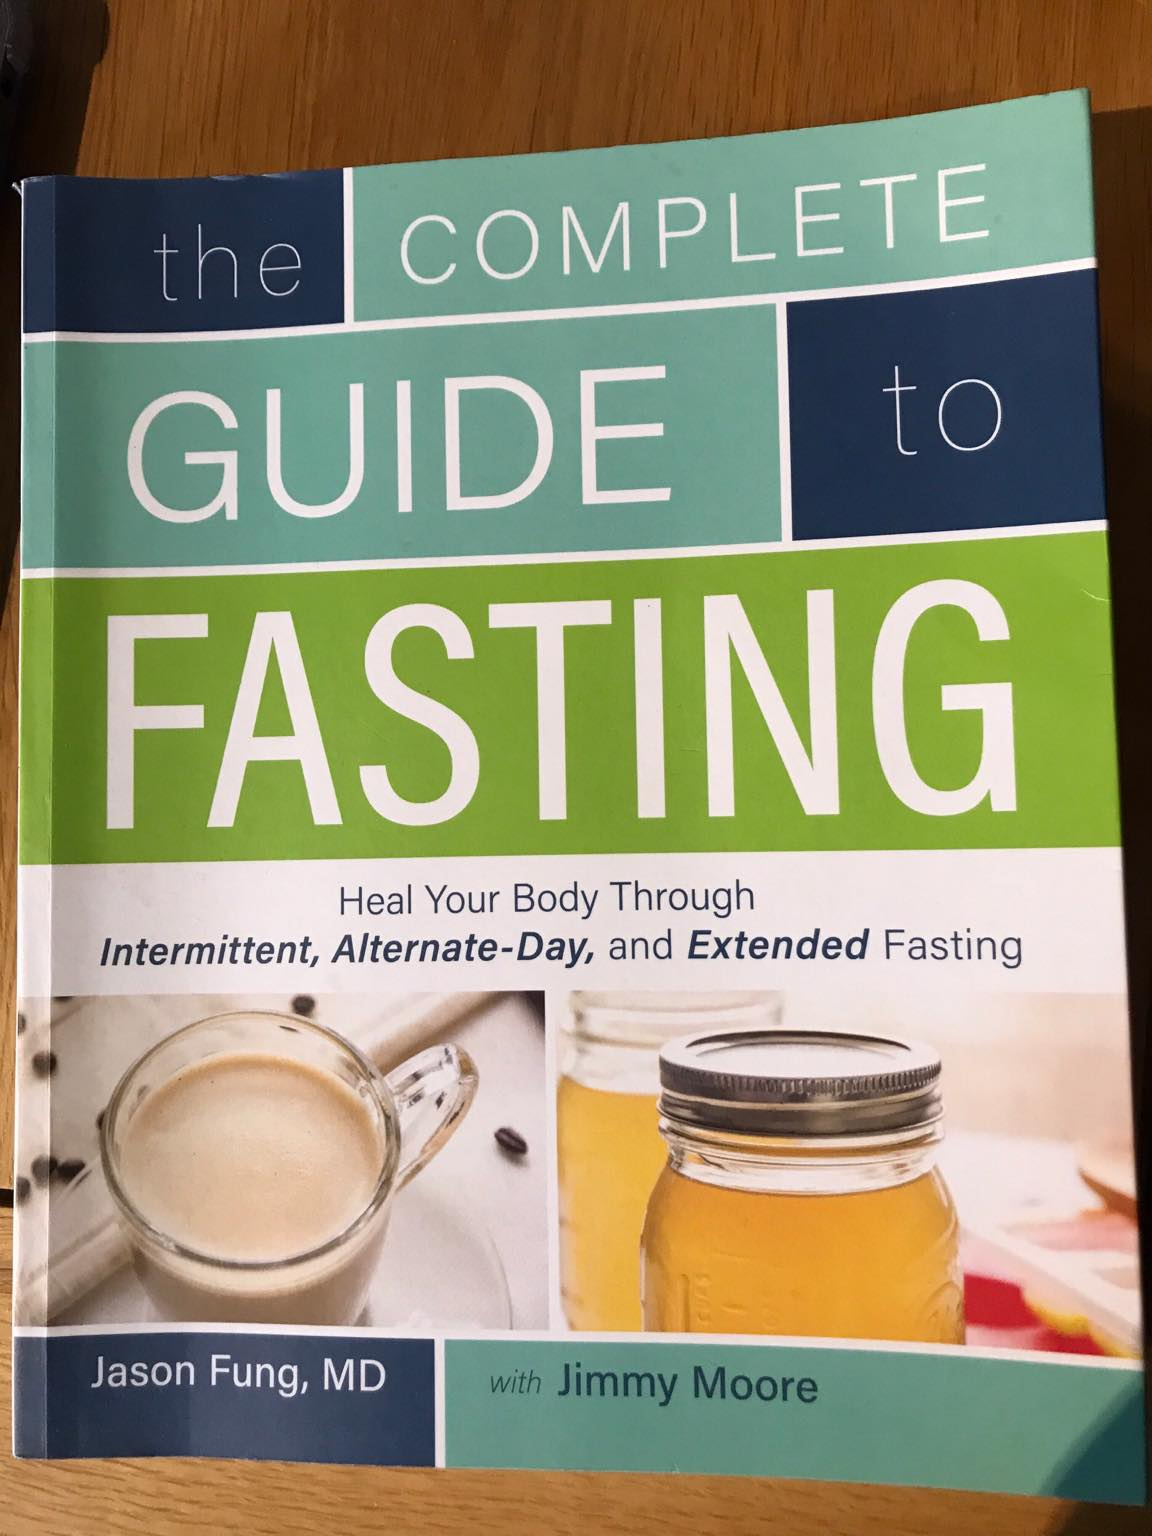 Intermittent Fasting Advice | Diabetes Forum • The Global